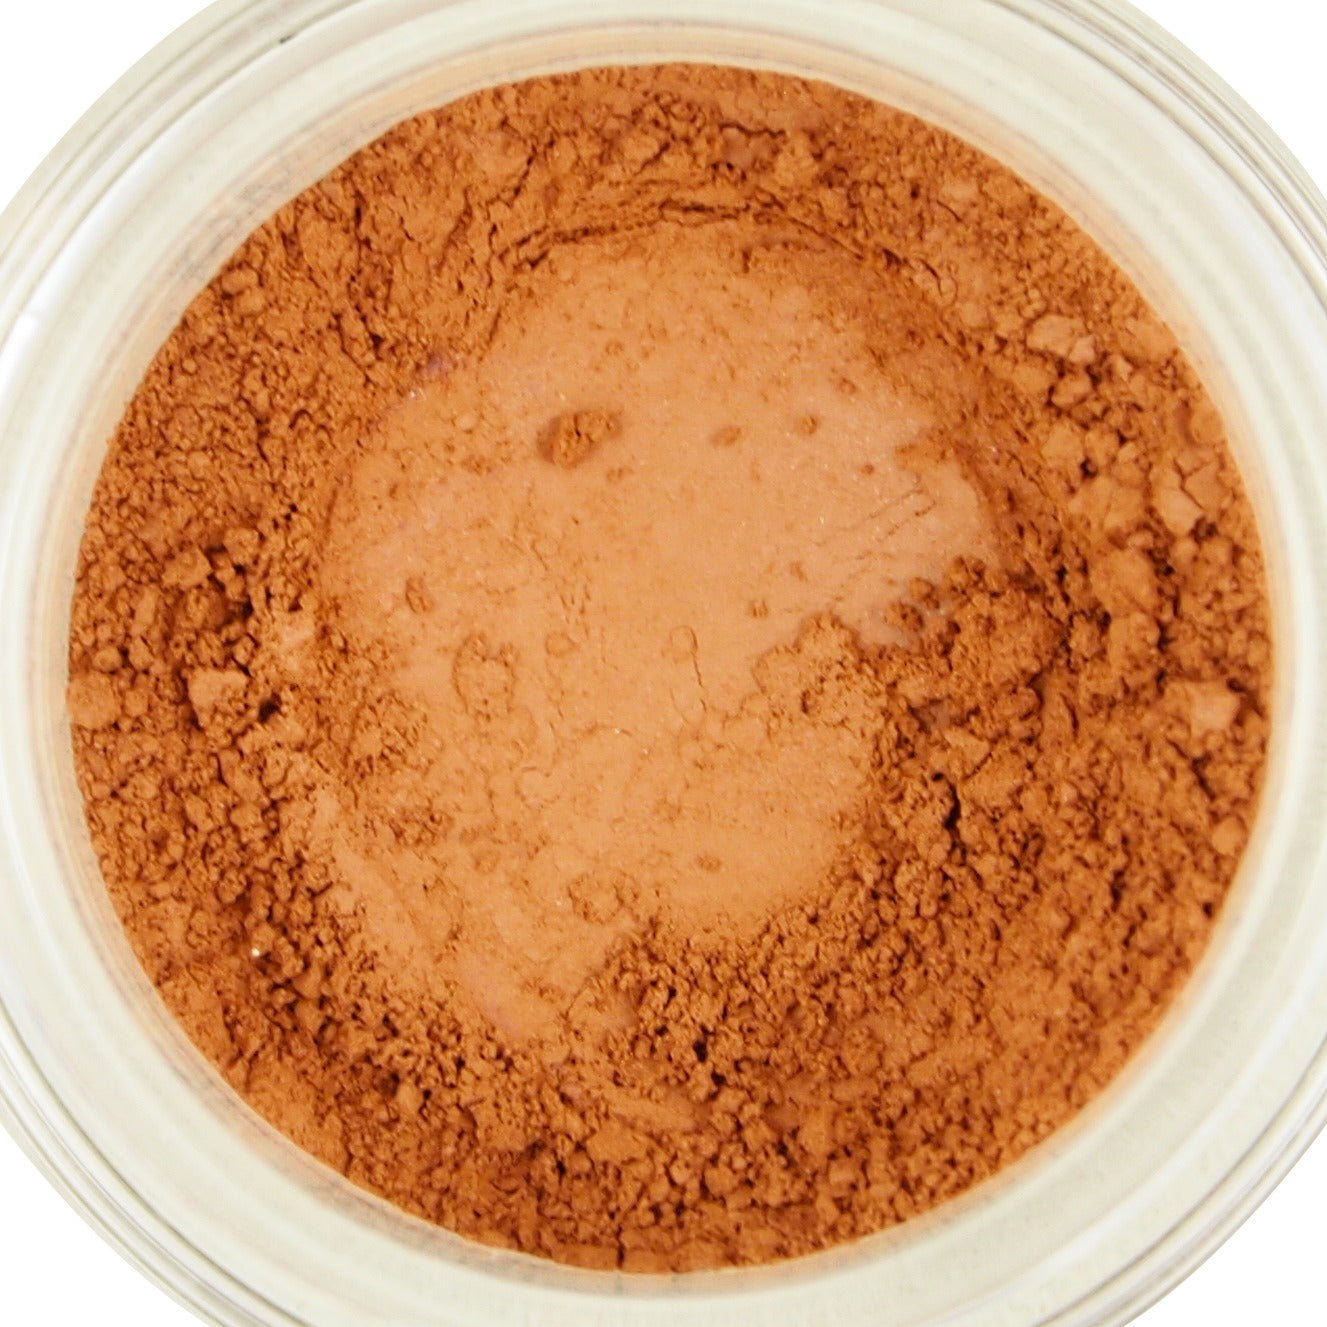 Simple Beauty Minerals - Velvet Mineral Eyeshadow 1